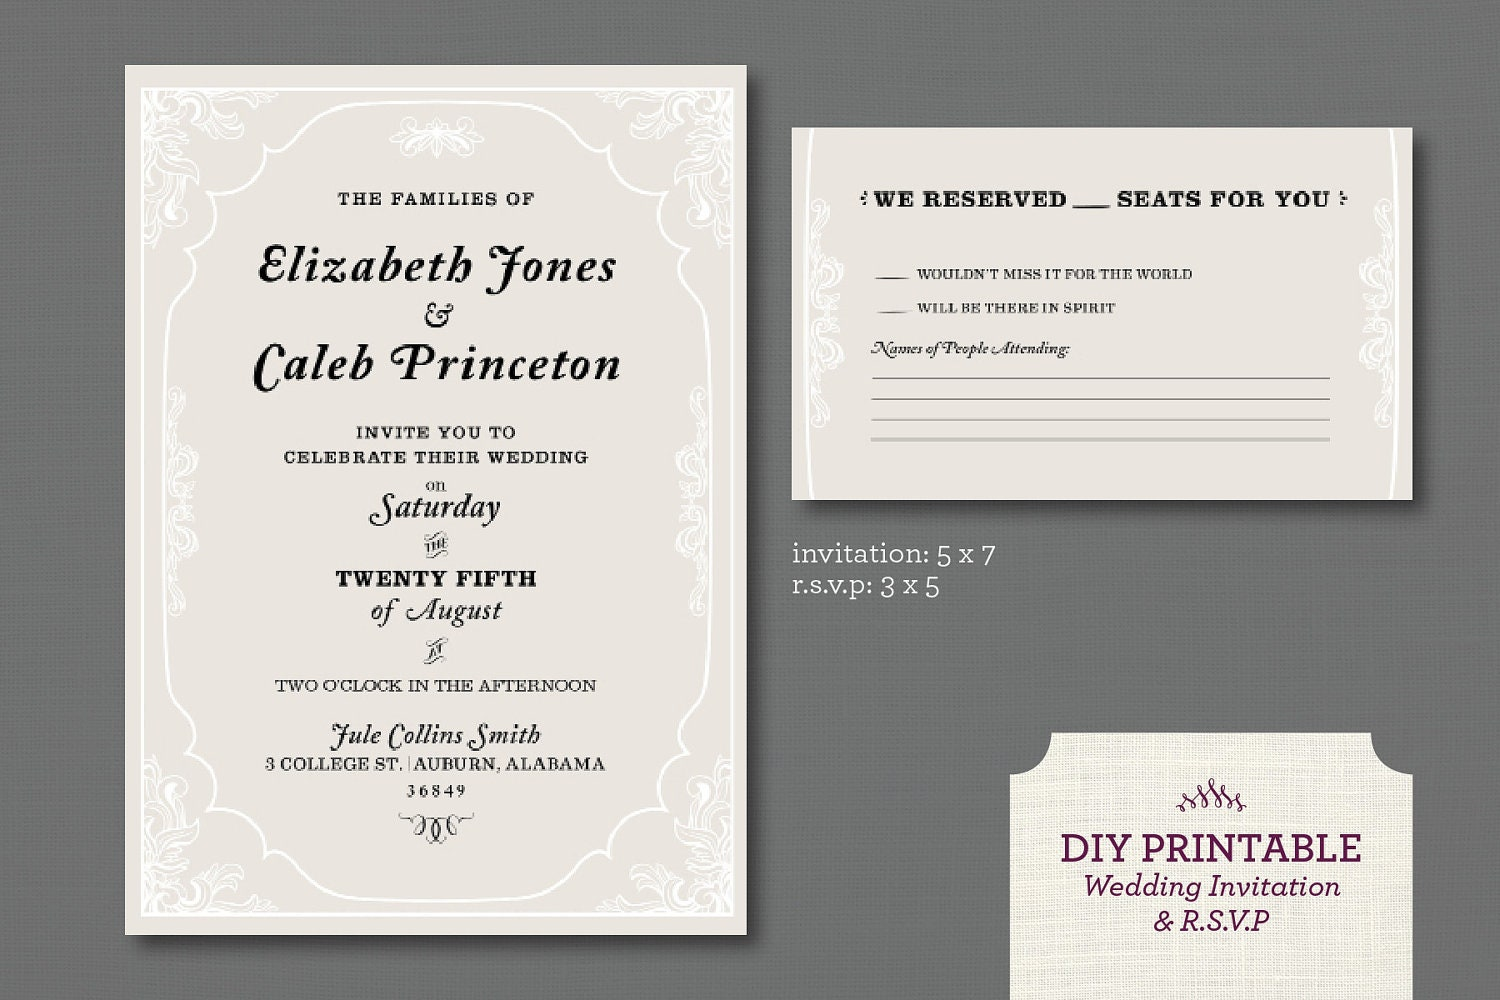 What Needs To Be Included In A Wedding Invitation: Printable Wedding Invitation And R.S.V.P By